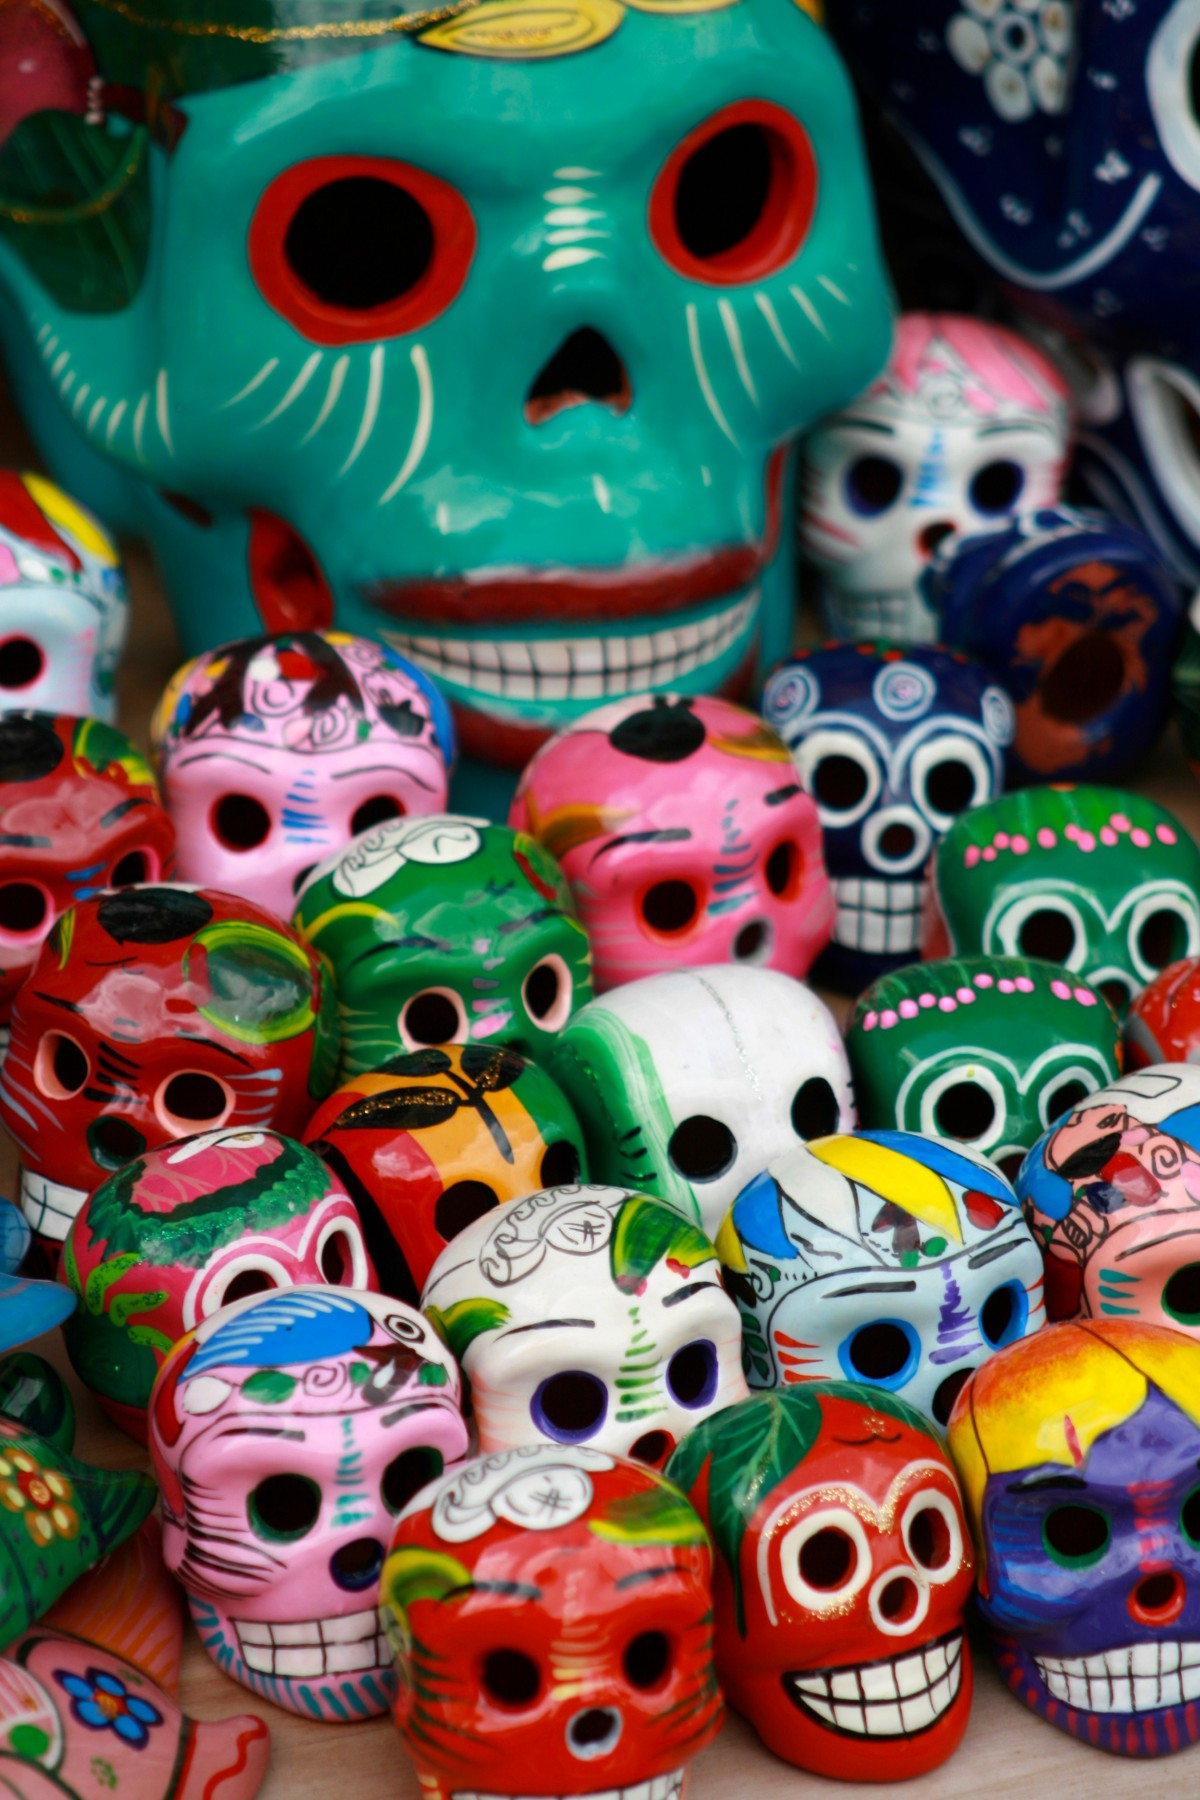 Free Images Color Dead Bead Skull Painting Art